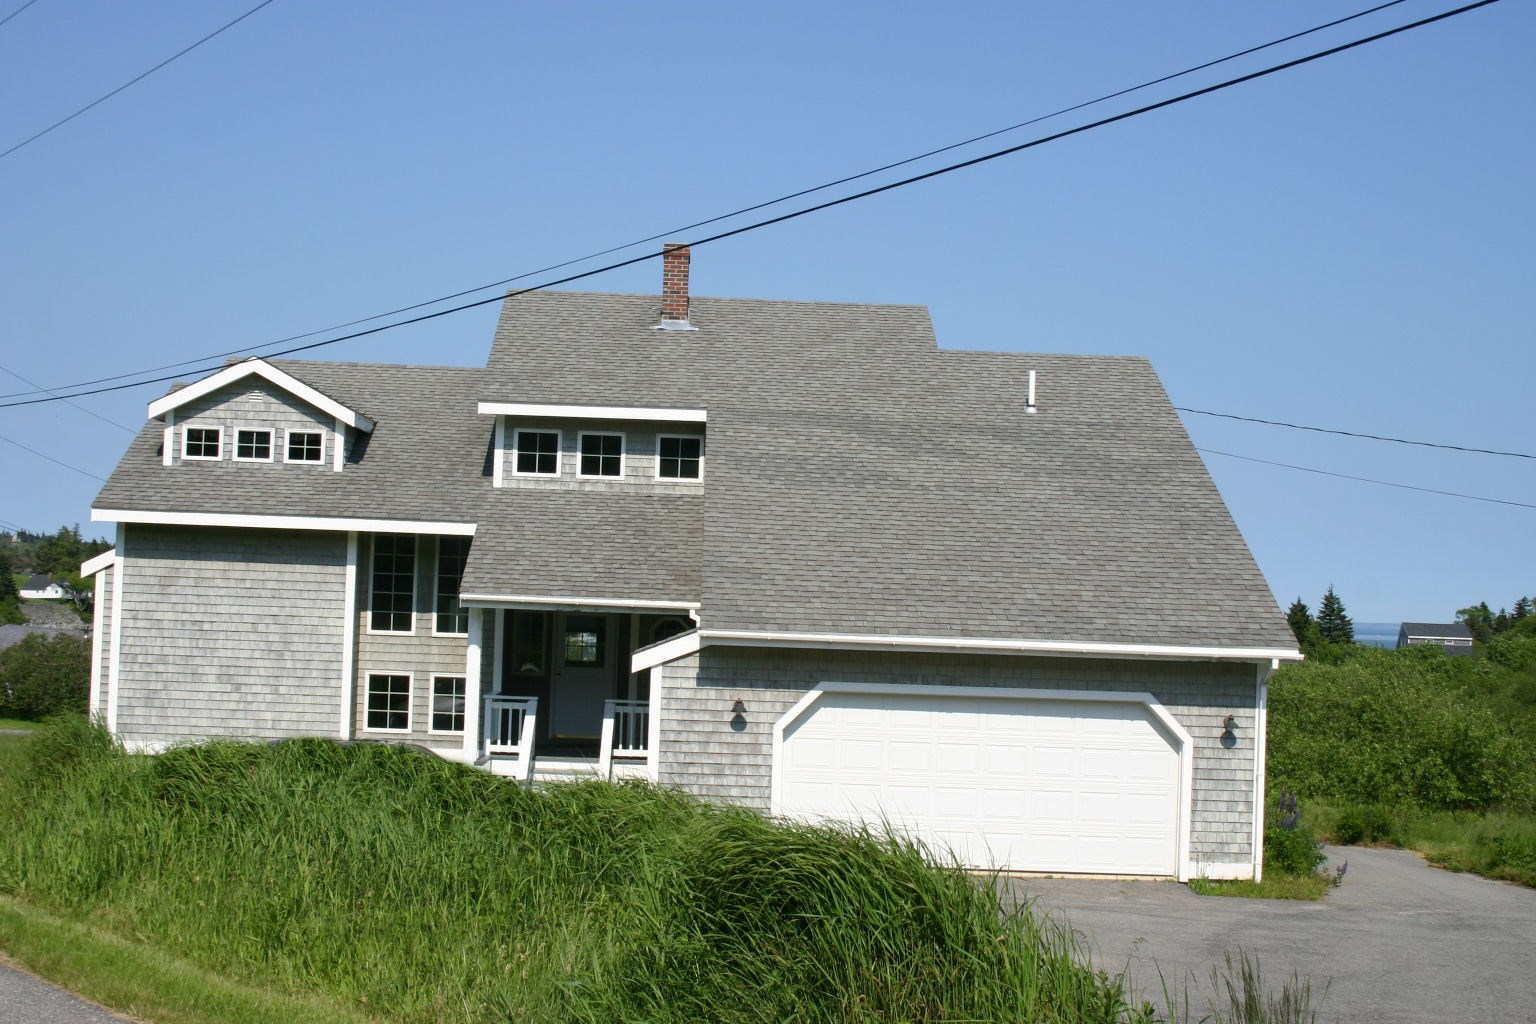 Expired - Maine Coastal Land for Sale in Lubec